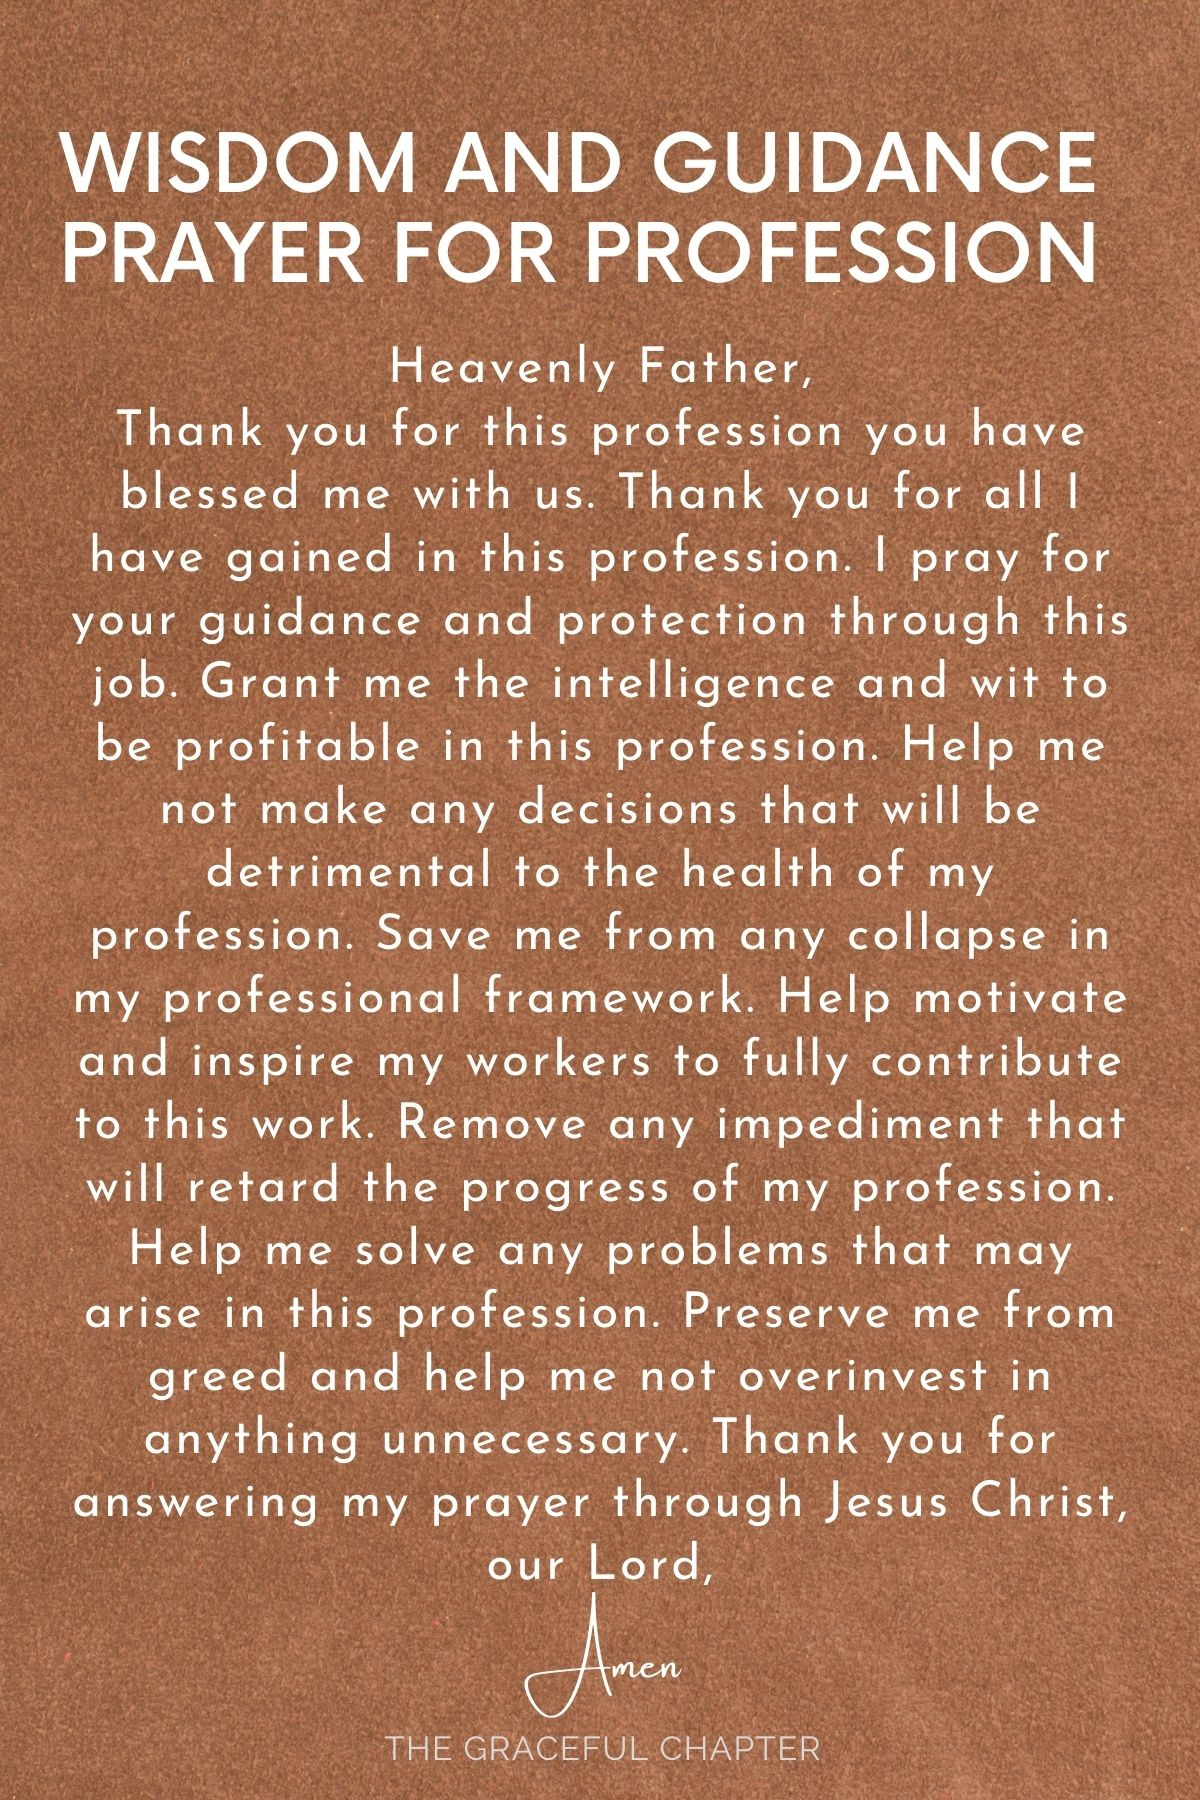 Wisdom and guidance for Profession